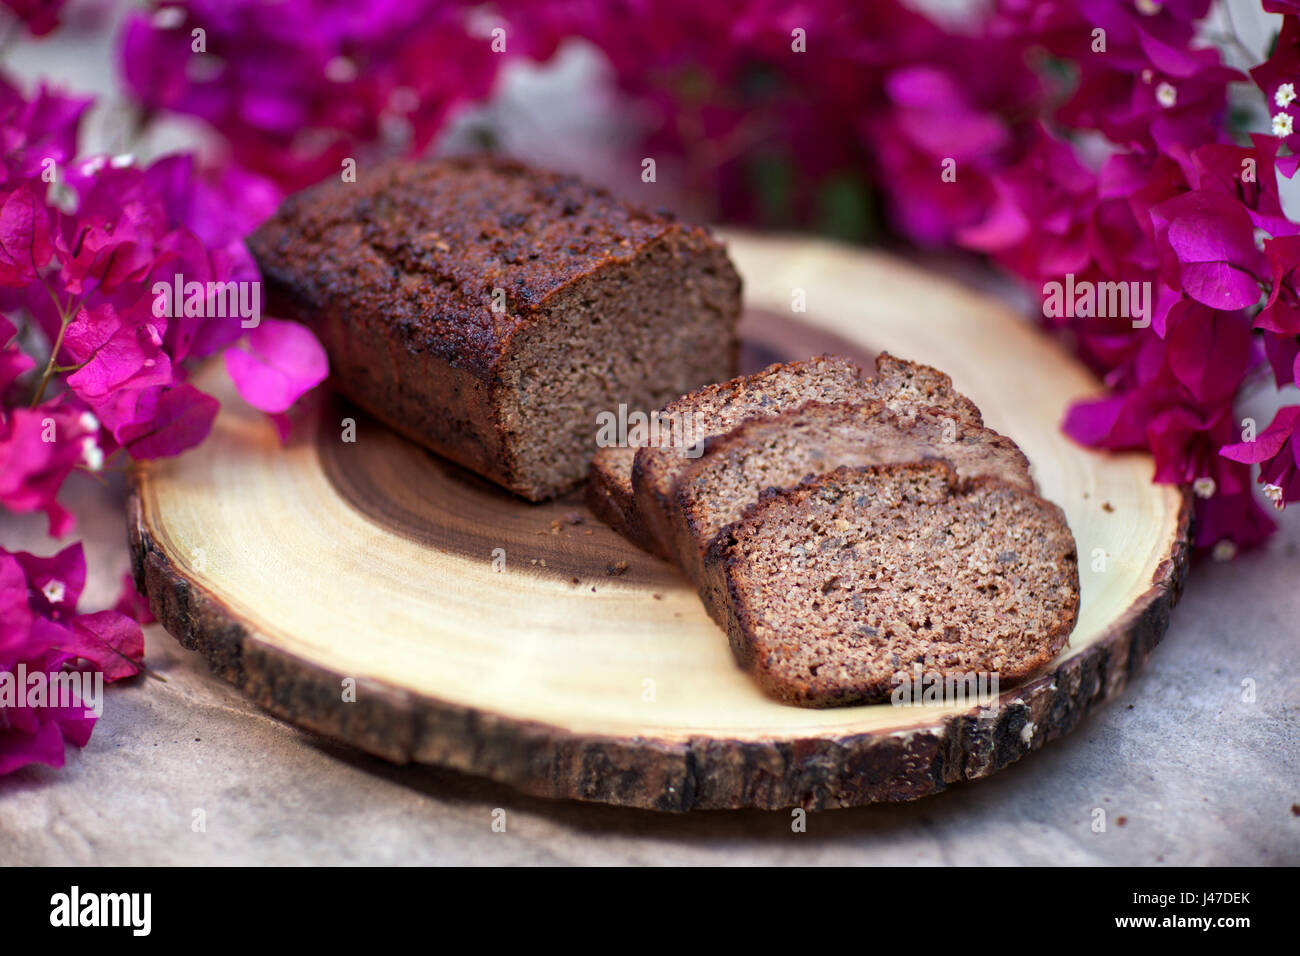 Homemade Banana Walnut bread sliced and displayed on wood-grain cutting board surrounded by pink bougainvillea flowers - Stock Image